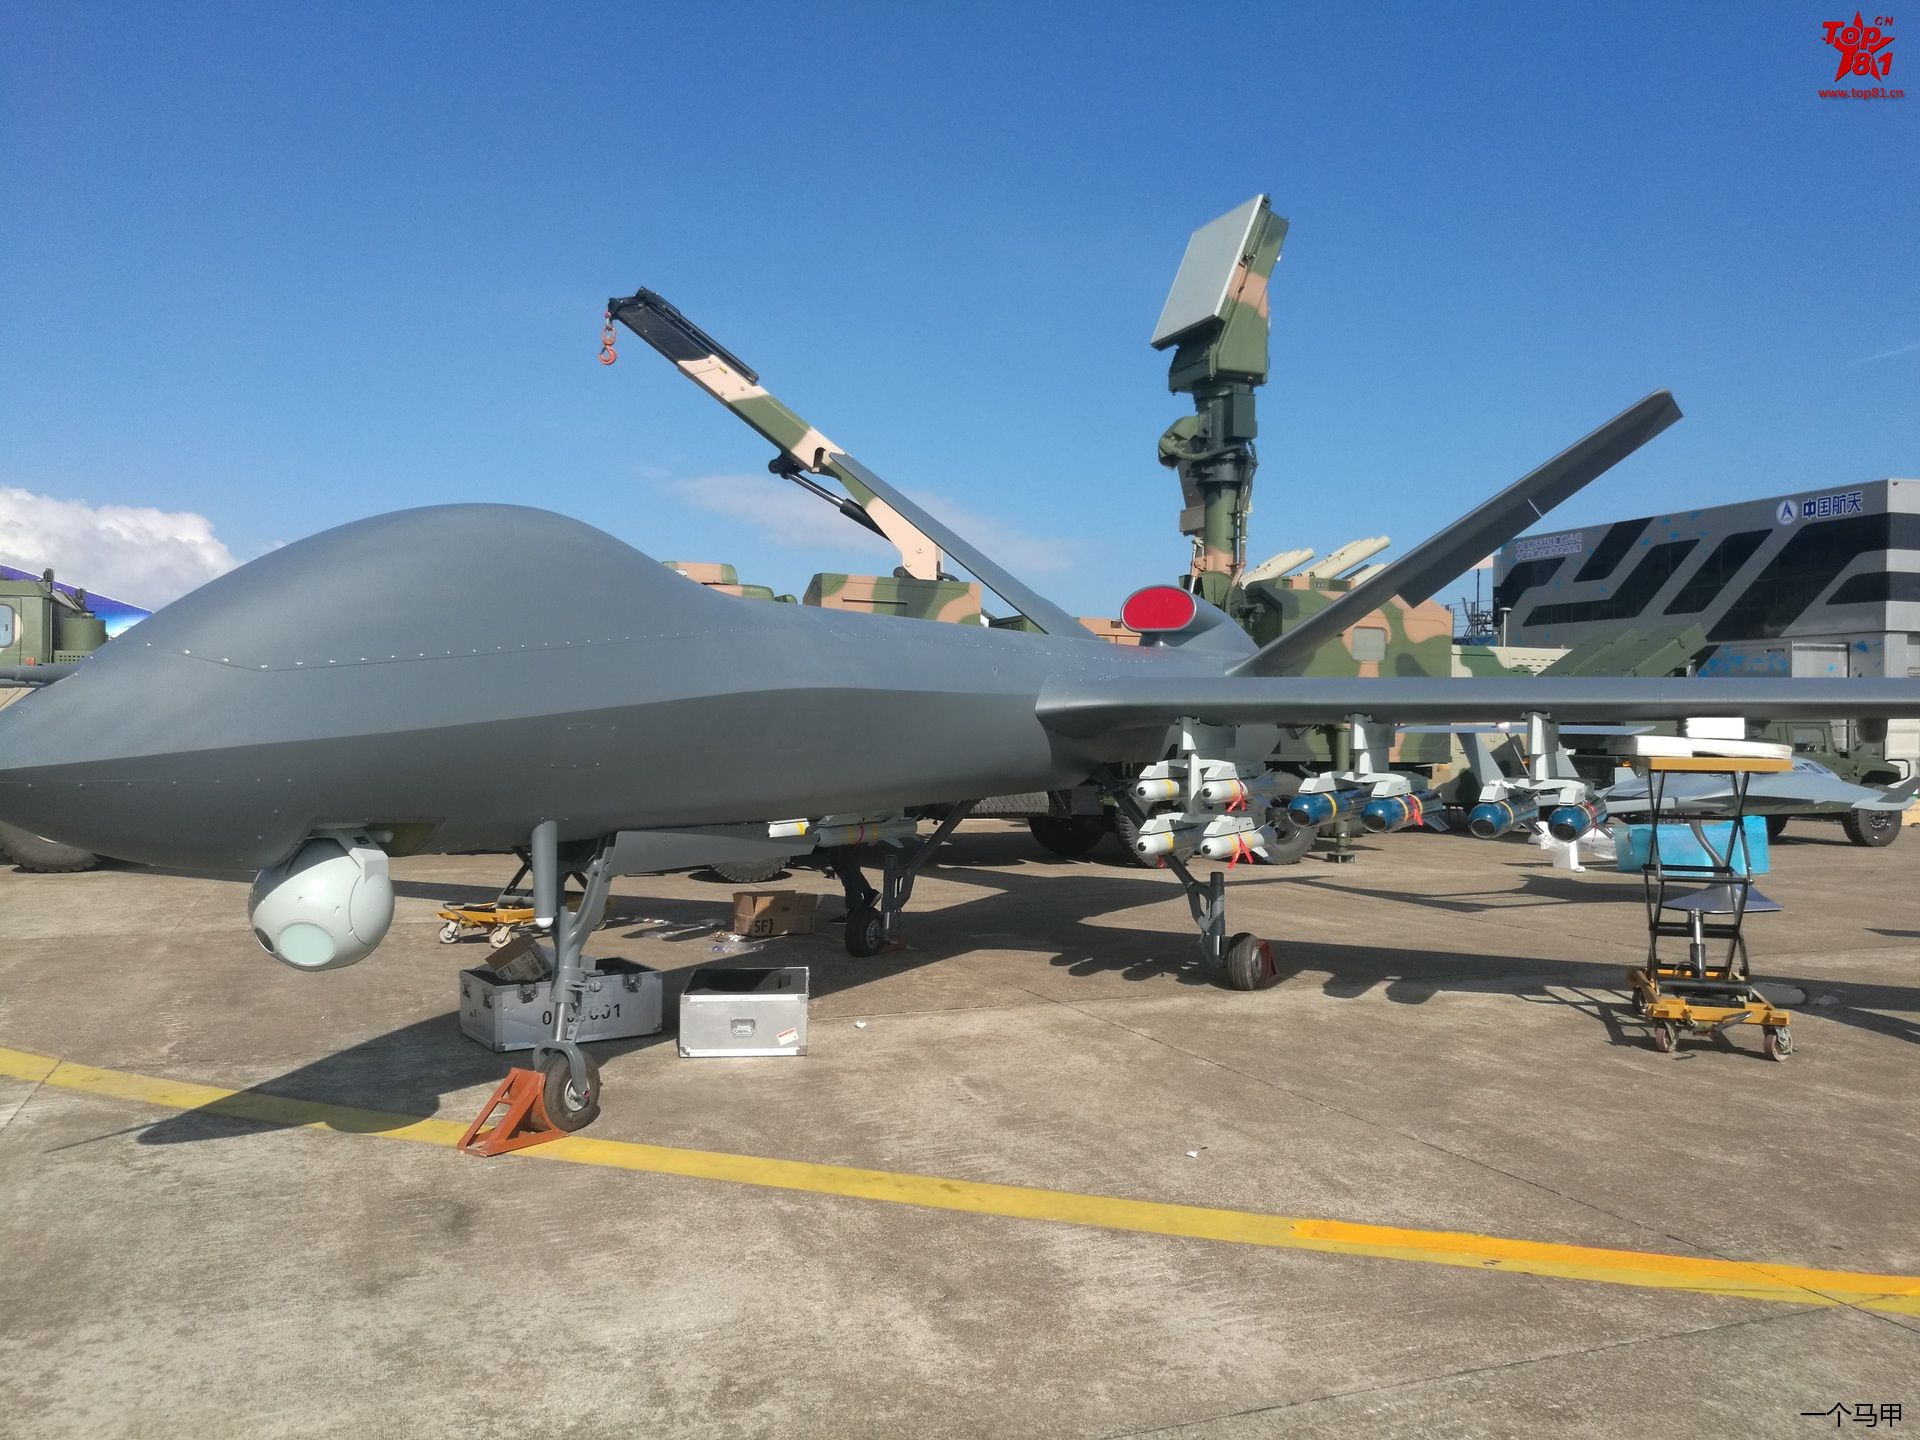 China's New Fleet Of Drones: Airshow Displays The Future Of Chinese